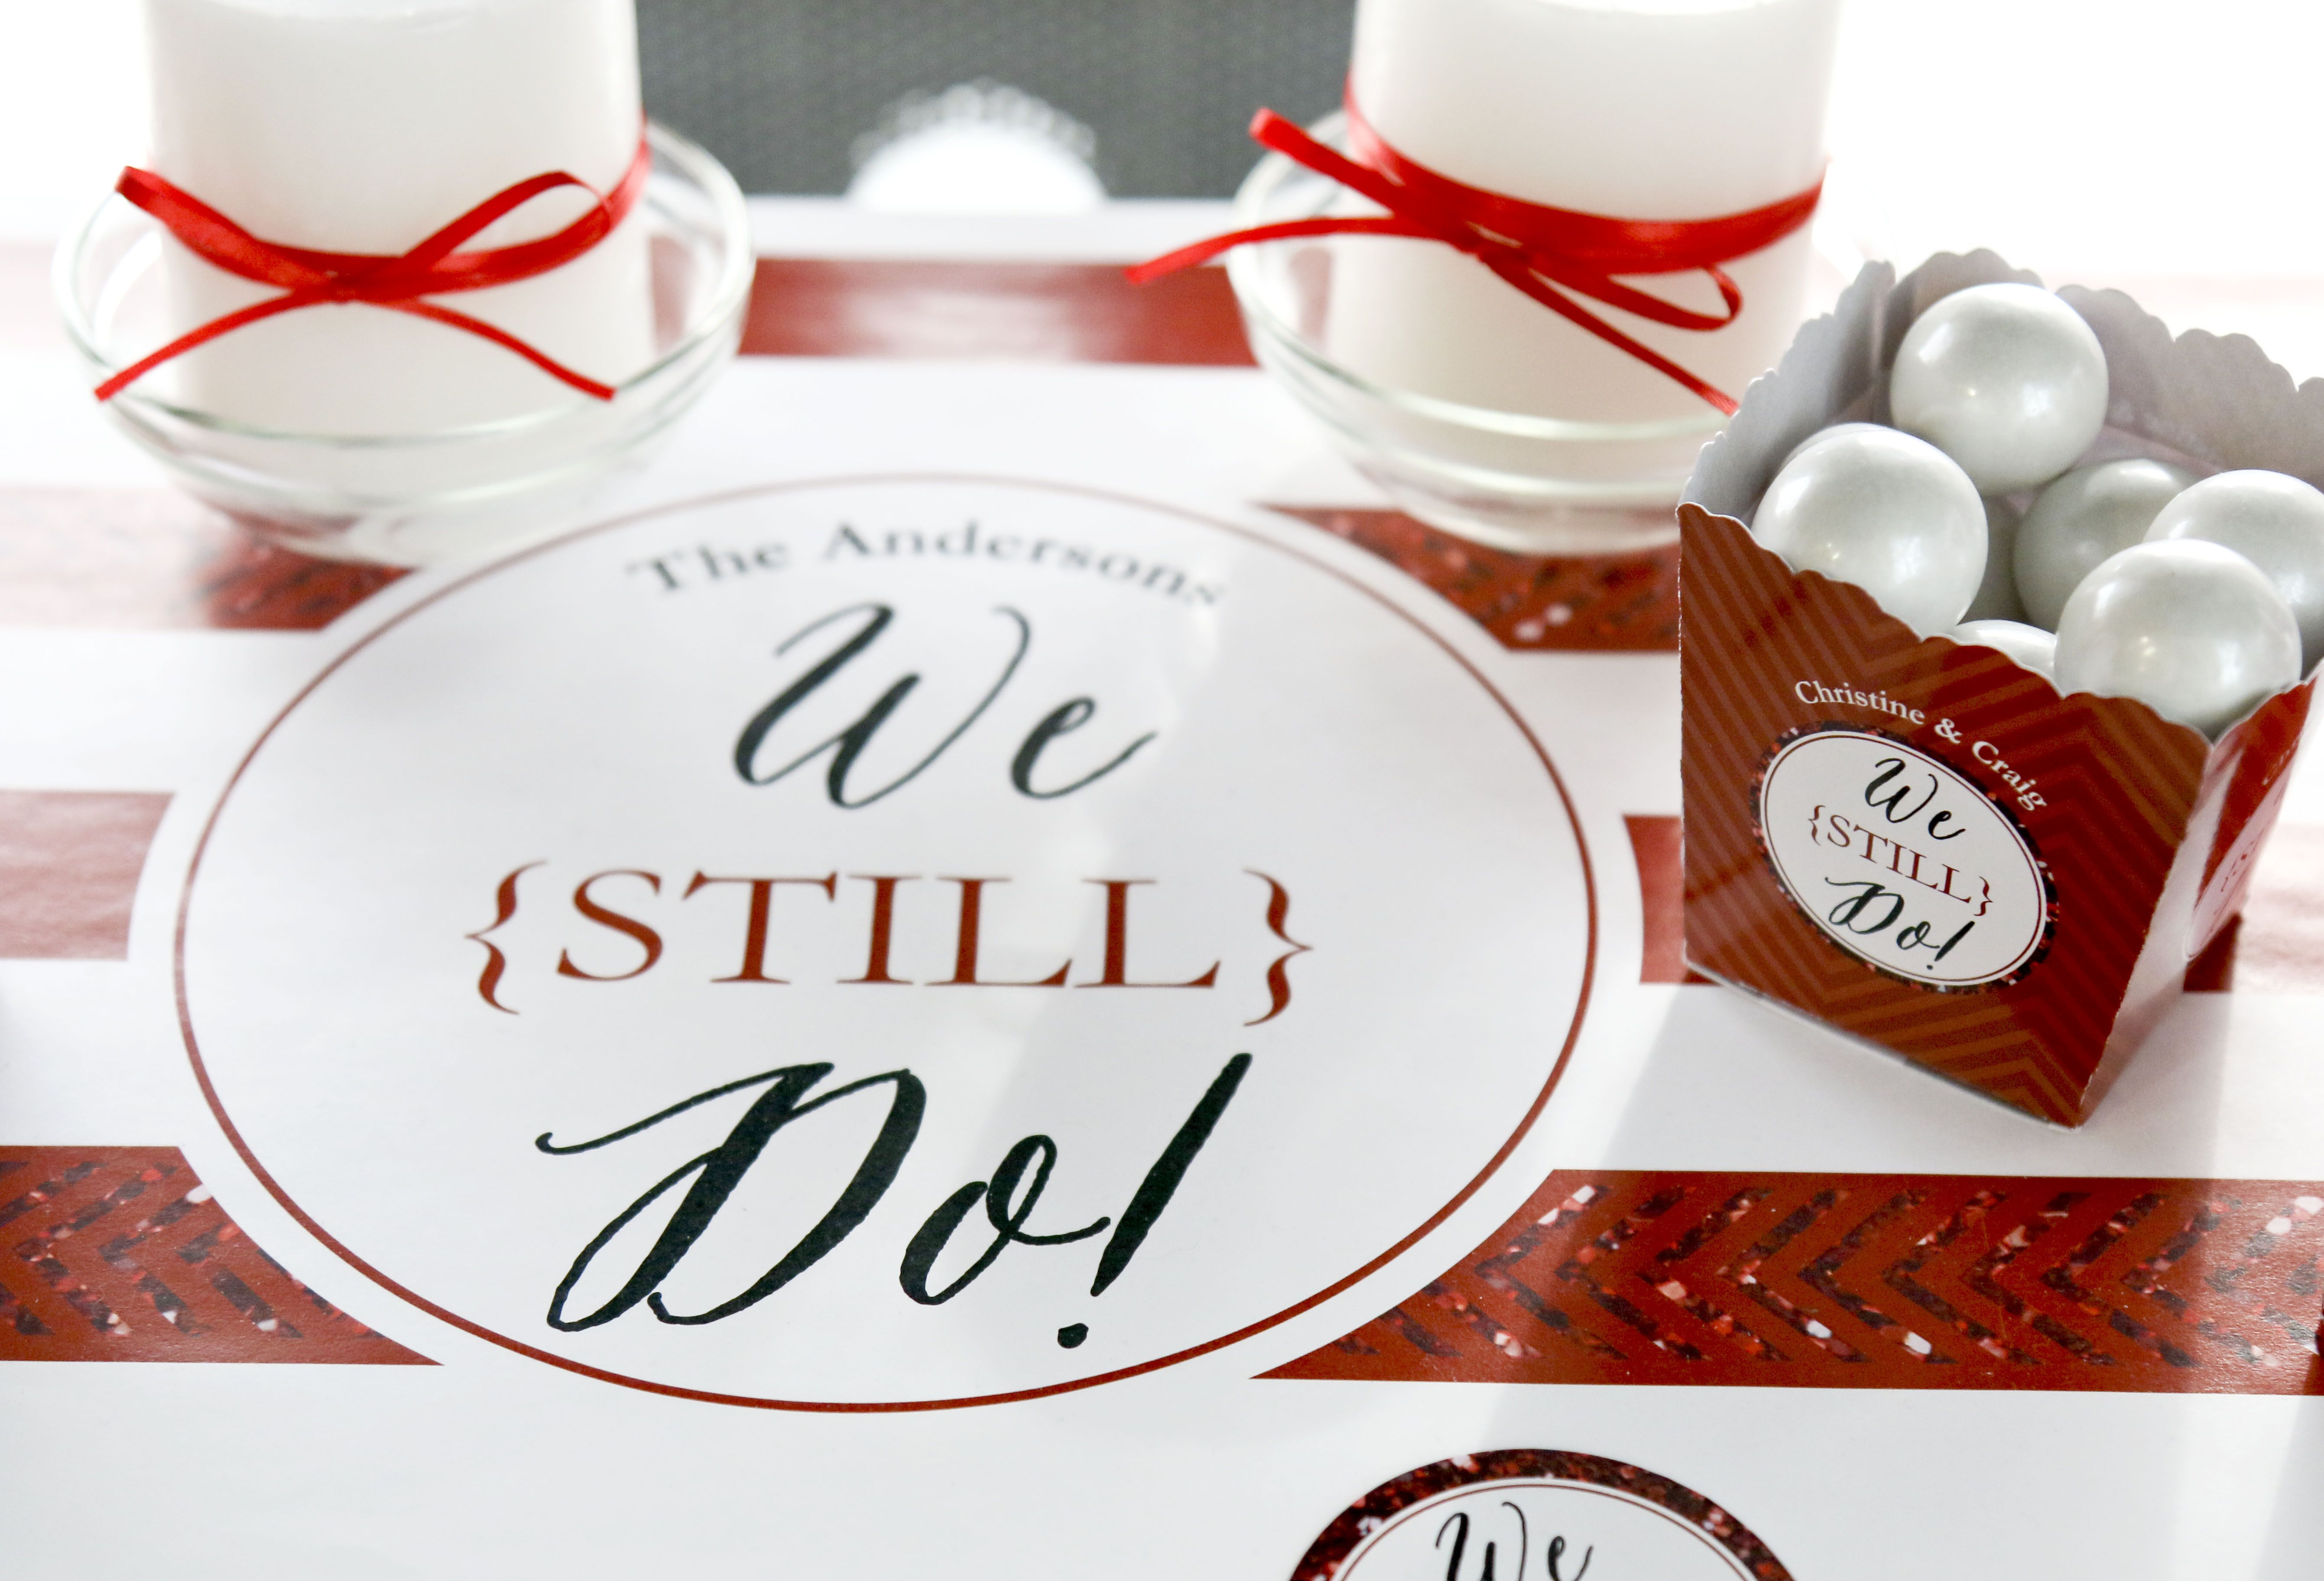 We Still Do 40th Wedding Anniversary Personalized Anniversary Selfie Photo Booth Picture Frame Props Printed On Sturdy Material Photo Booth Picture Frames 40th Wedding Anniversary 40th Anniversary Party